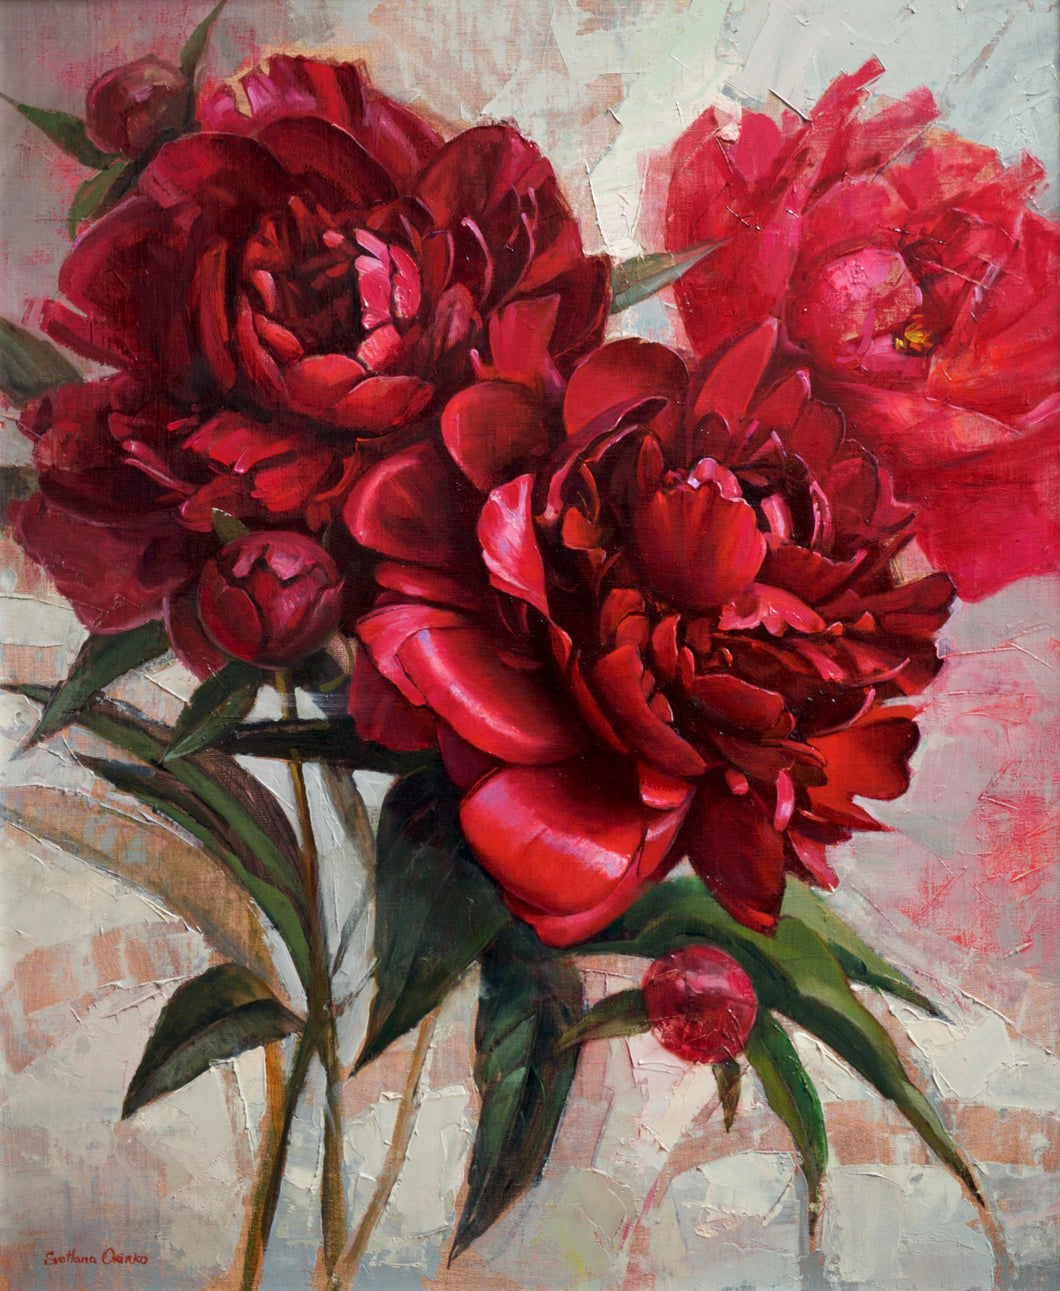 Red Peonies by Svetlana Orinko